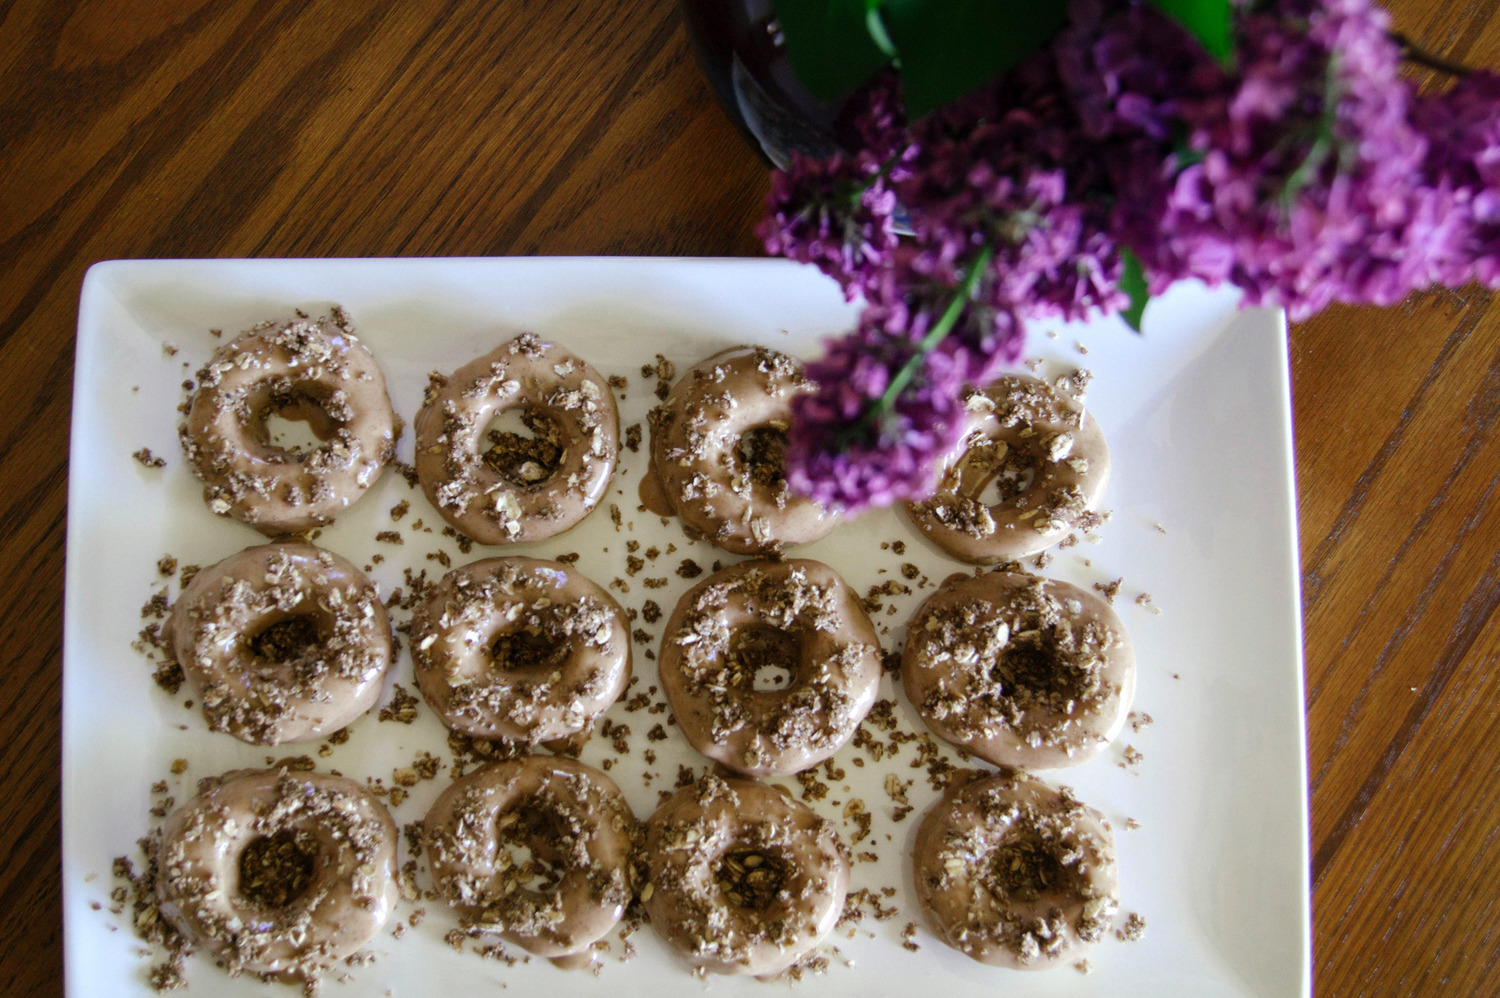 Vegan Baked Coffee Doughnuts With Maple Glaze topped with nuts